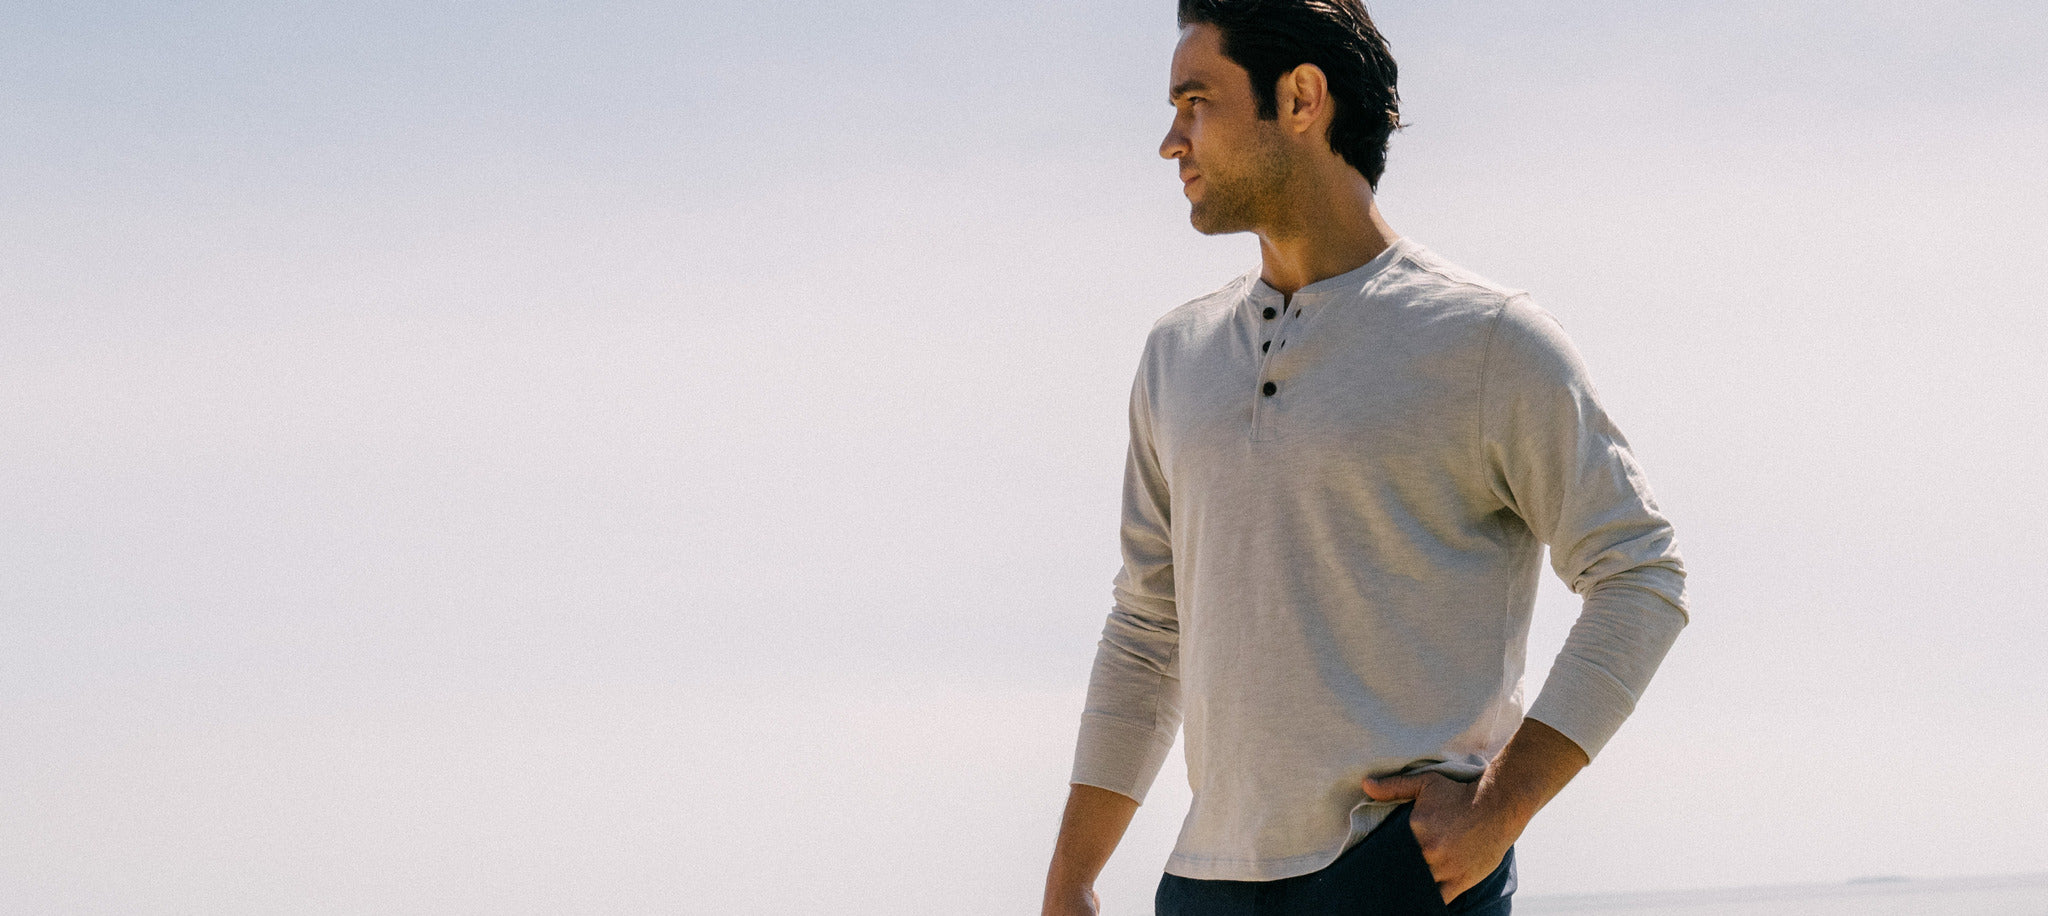 Polos and T-Shirts made from 100% super soft Pima cotton, with proper sleeve and body lengths.